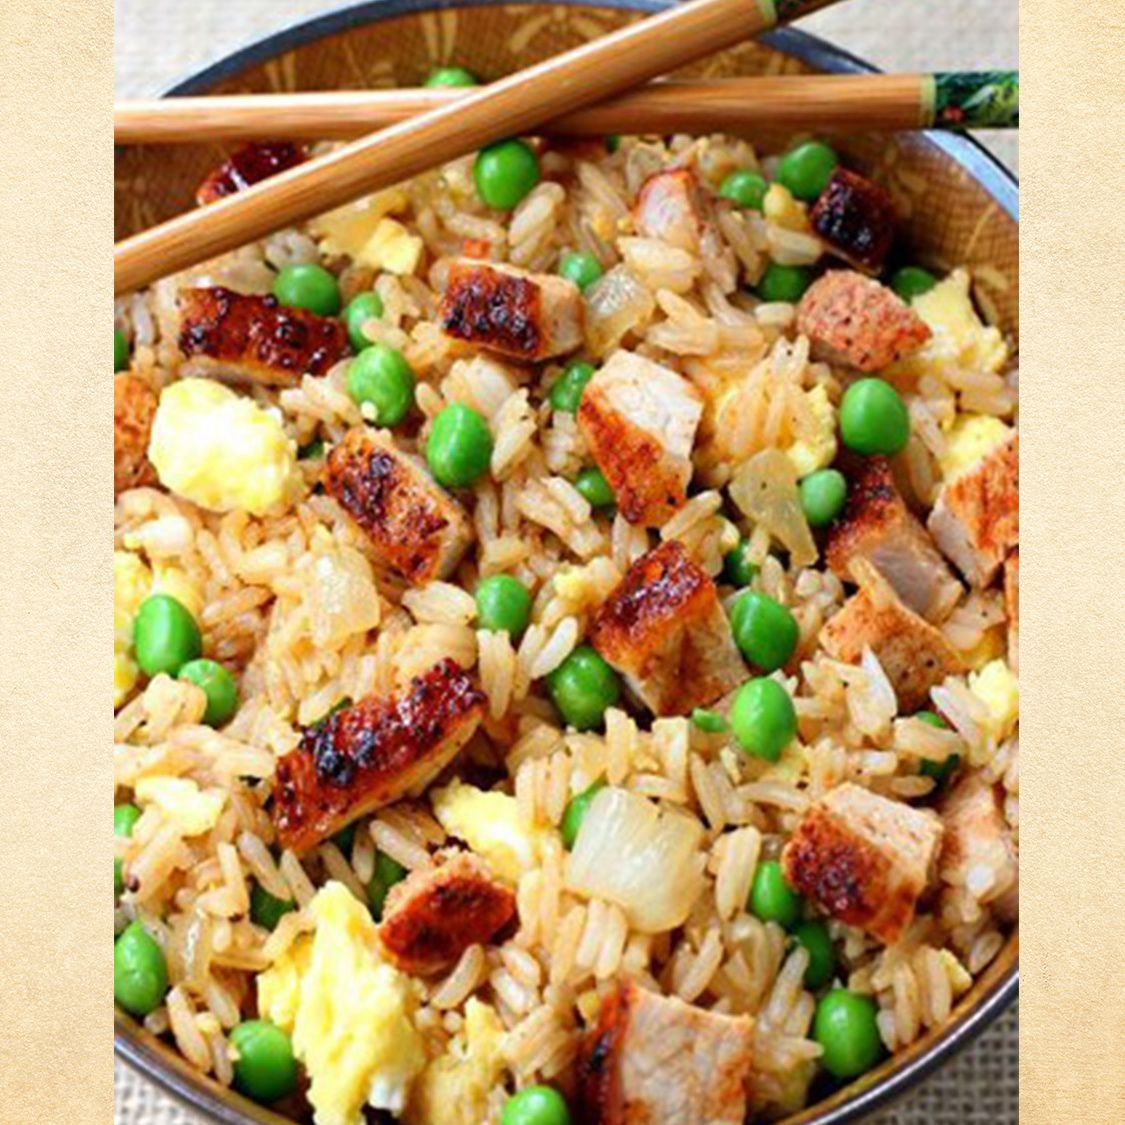 barbq_pork_fried_rice.jpg